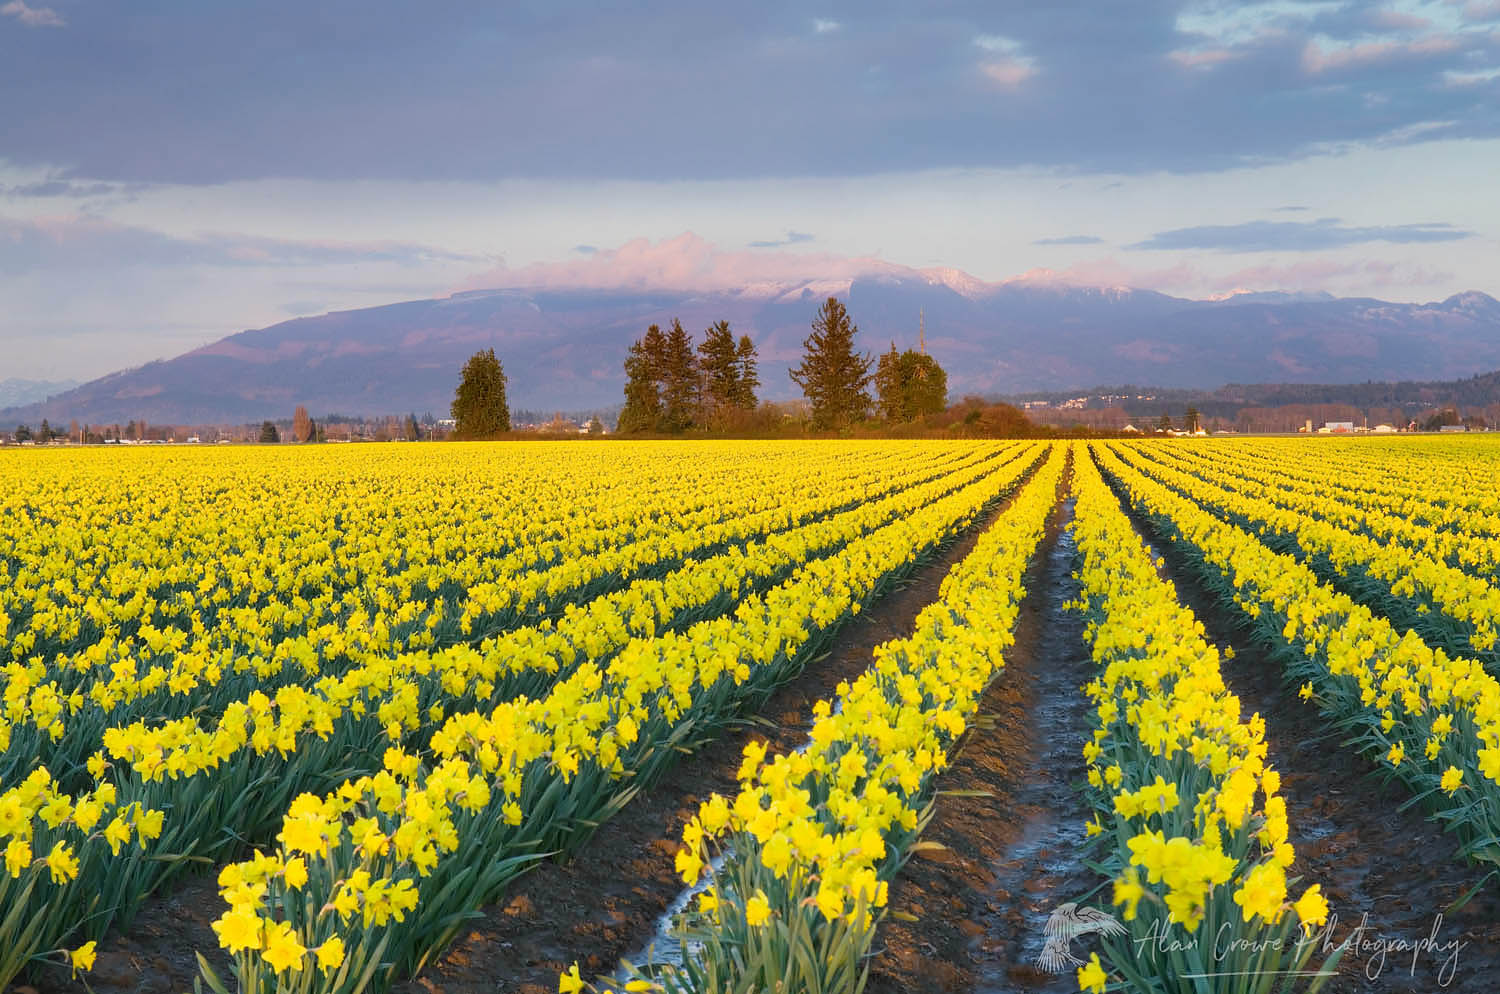 Skagit Valley Daffodil fields, Washington